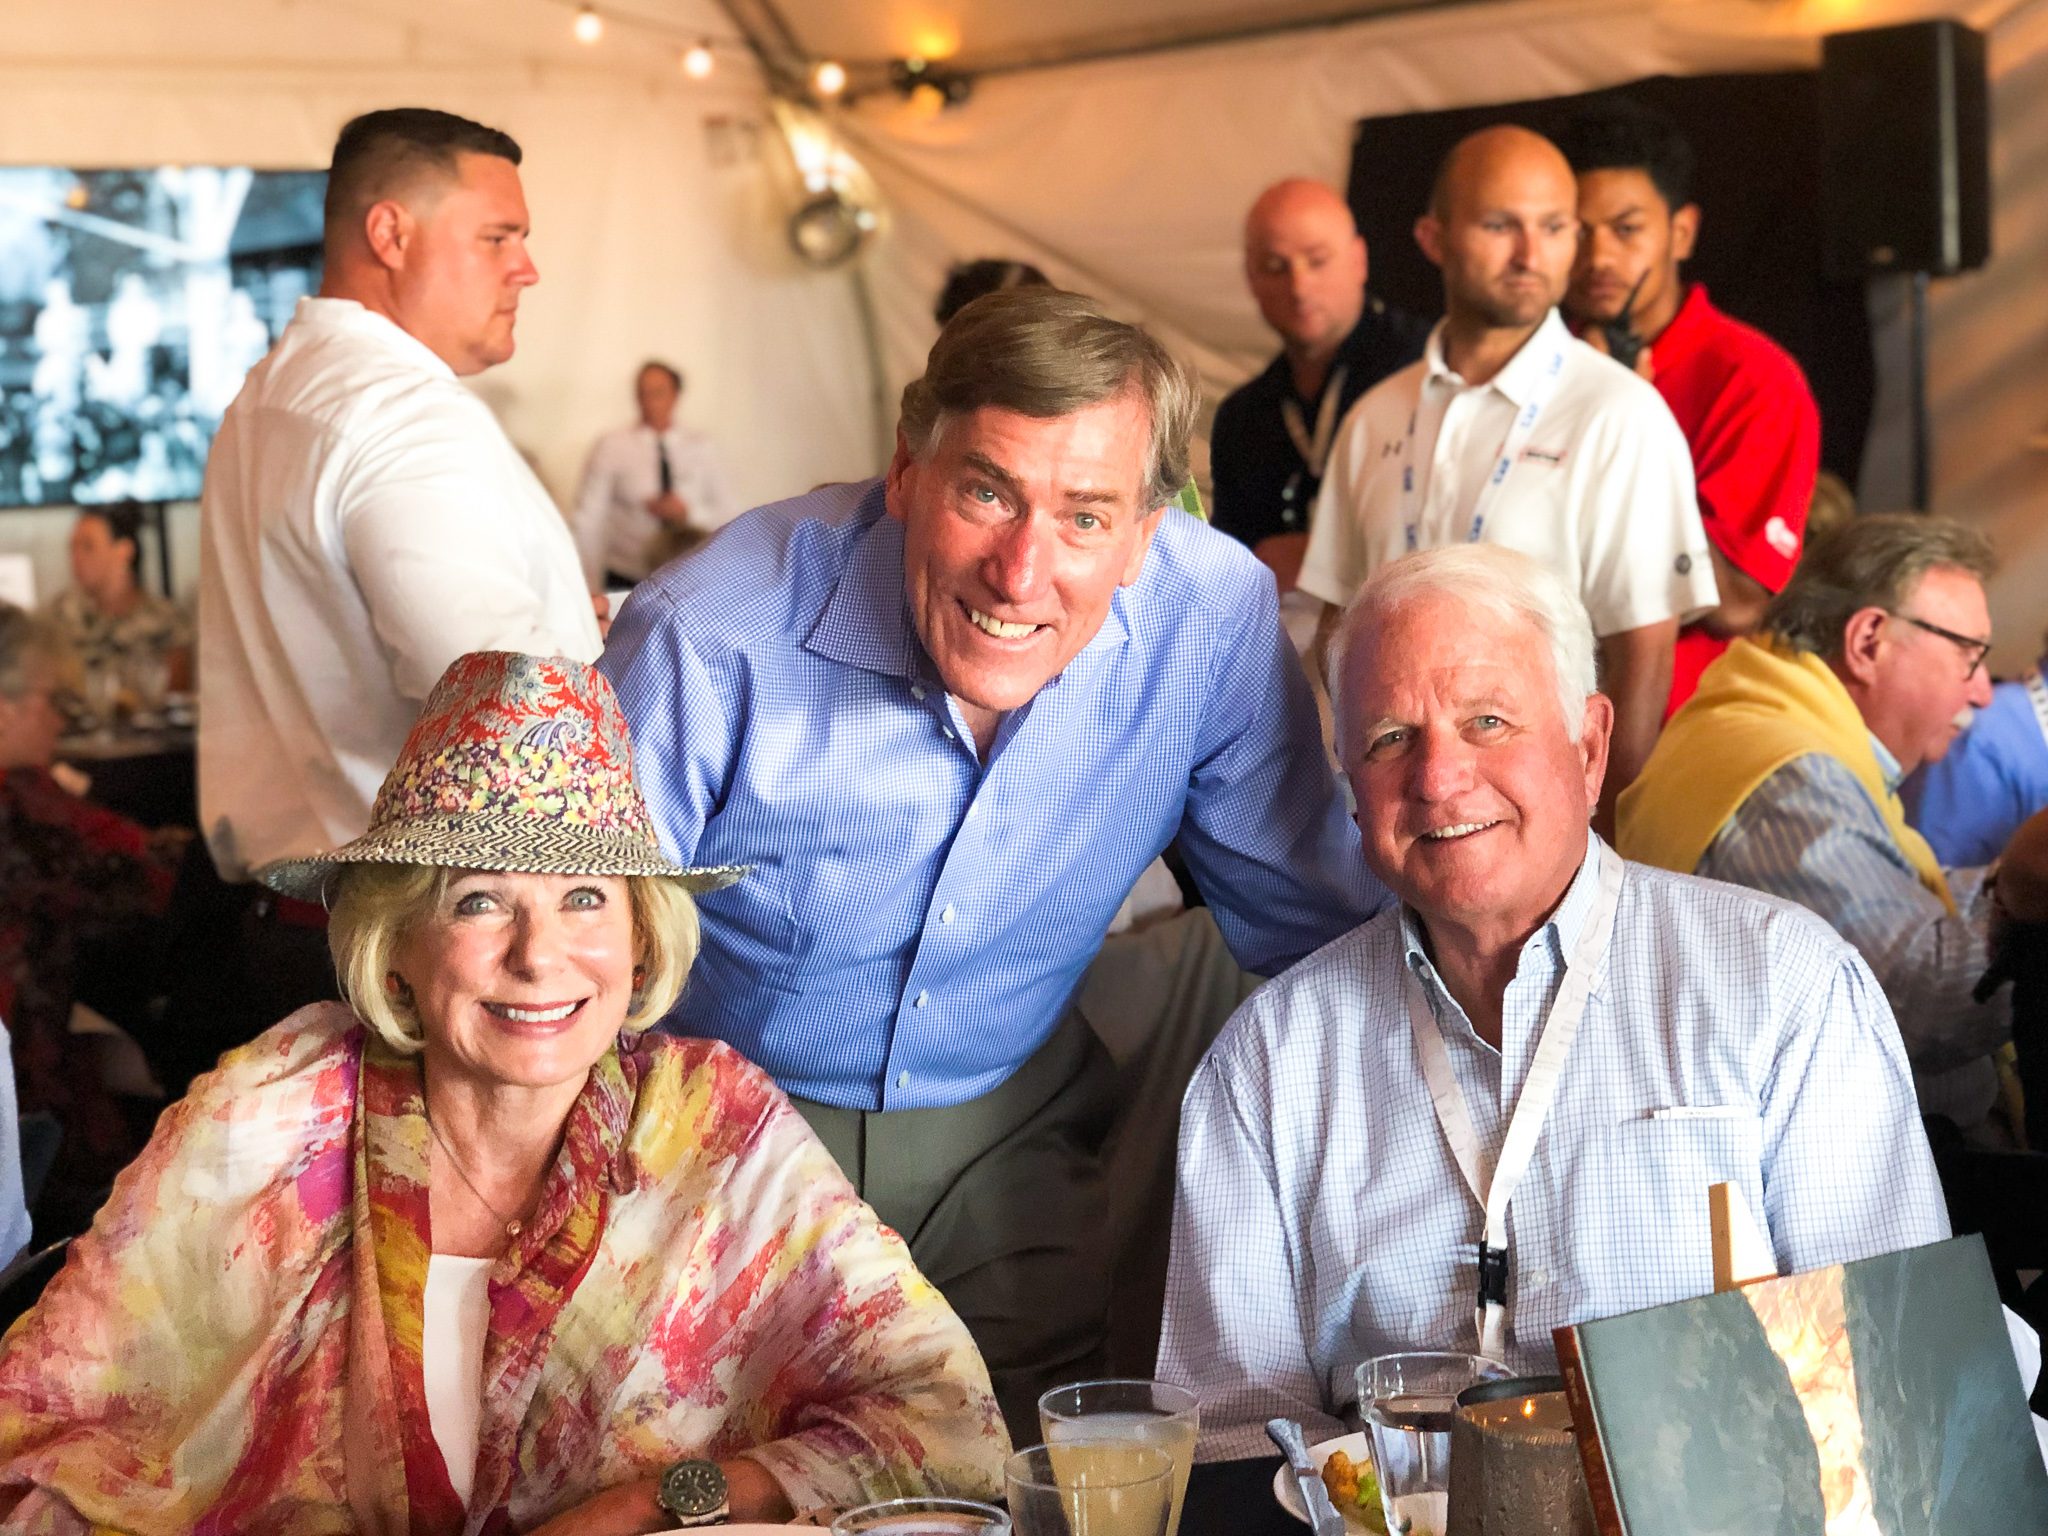 Pictured (L-R): Susan Swartz, A. Scott Anderson, President & CEO of Zions Bank, Jim Swartz.